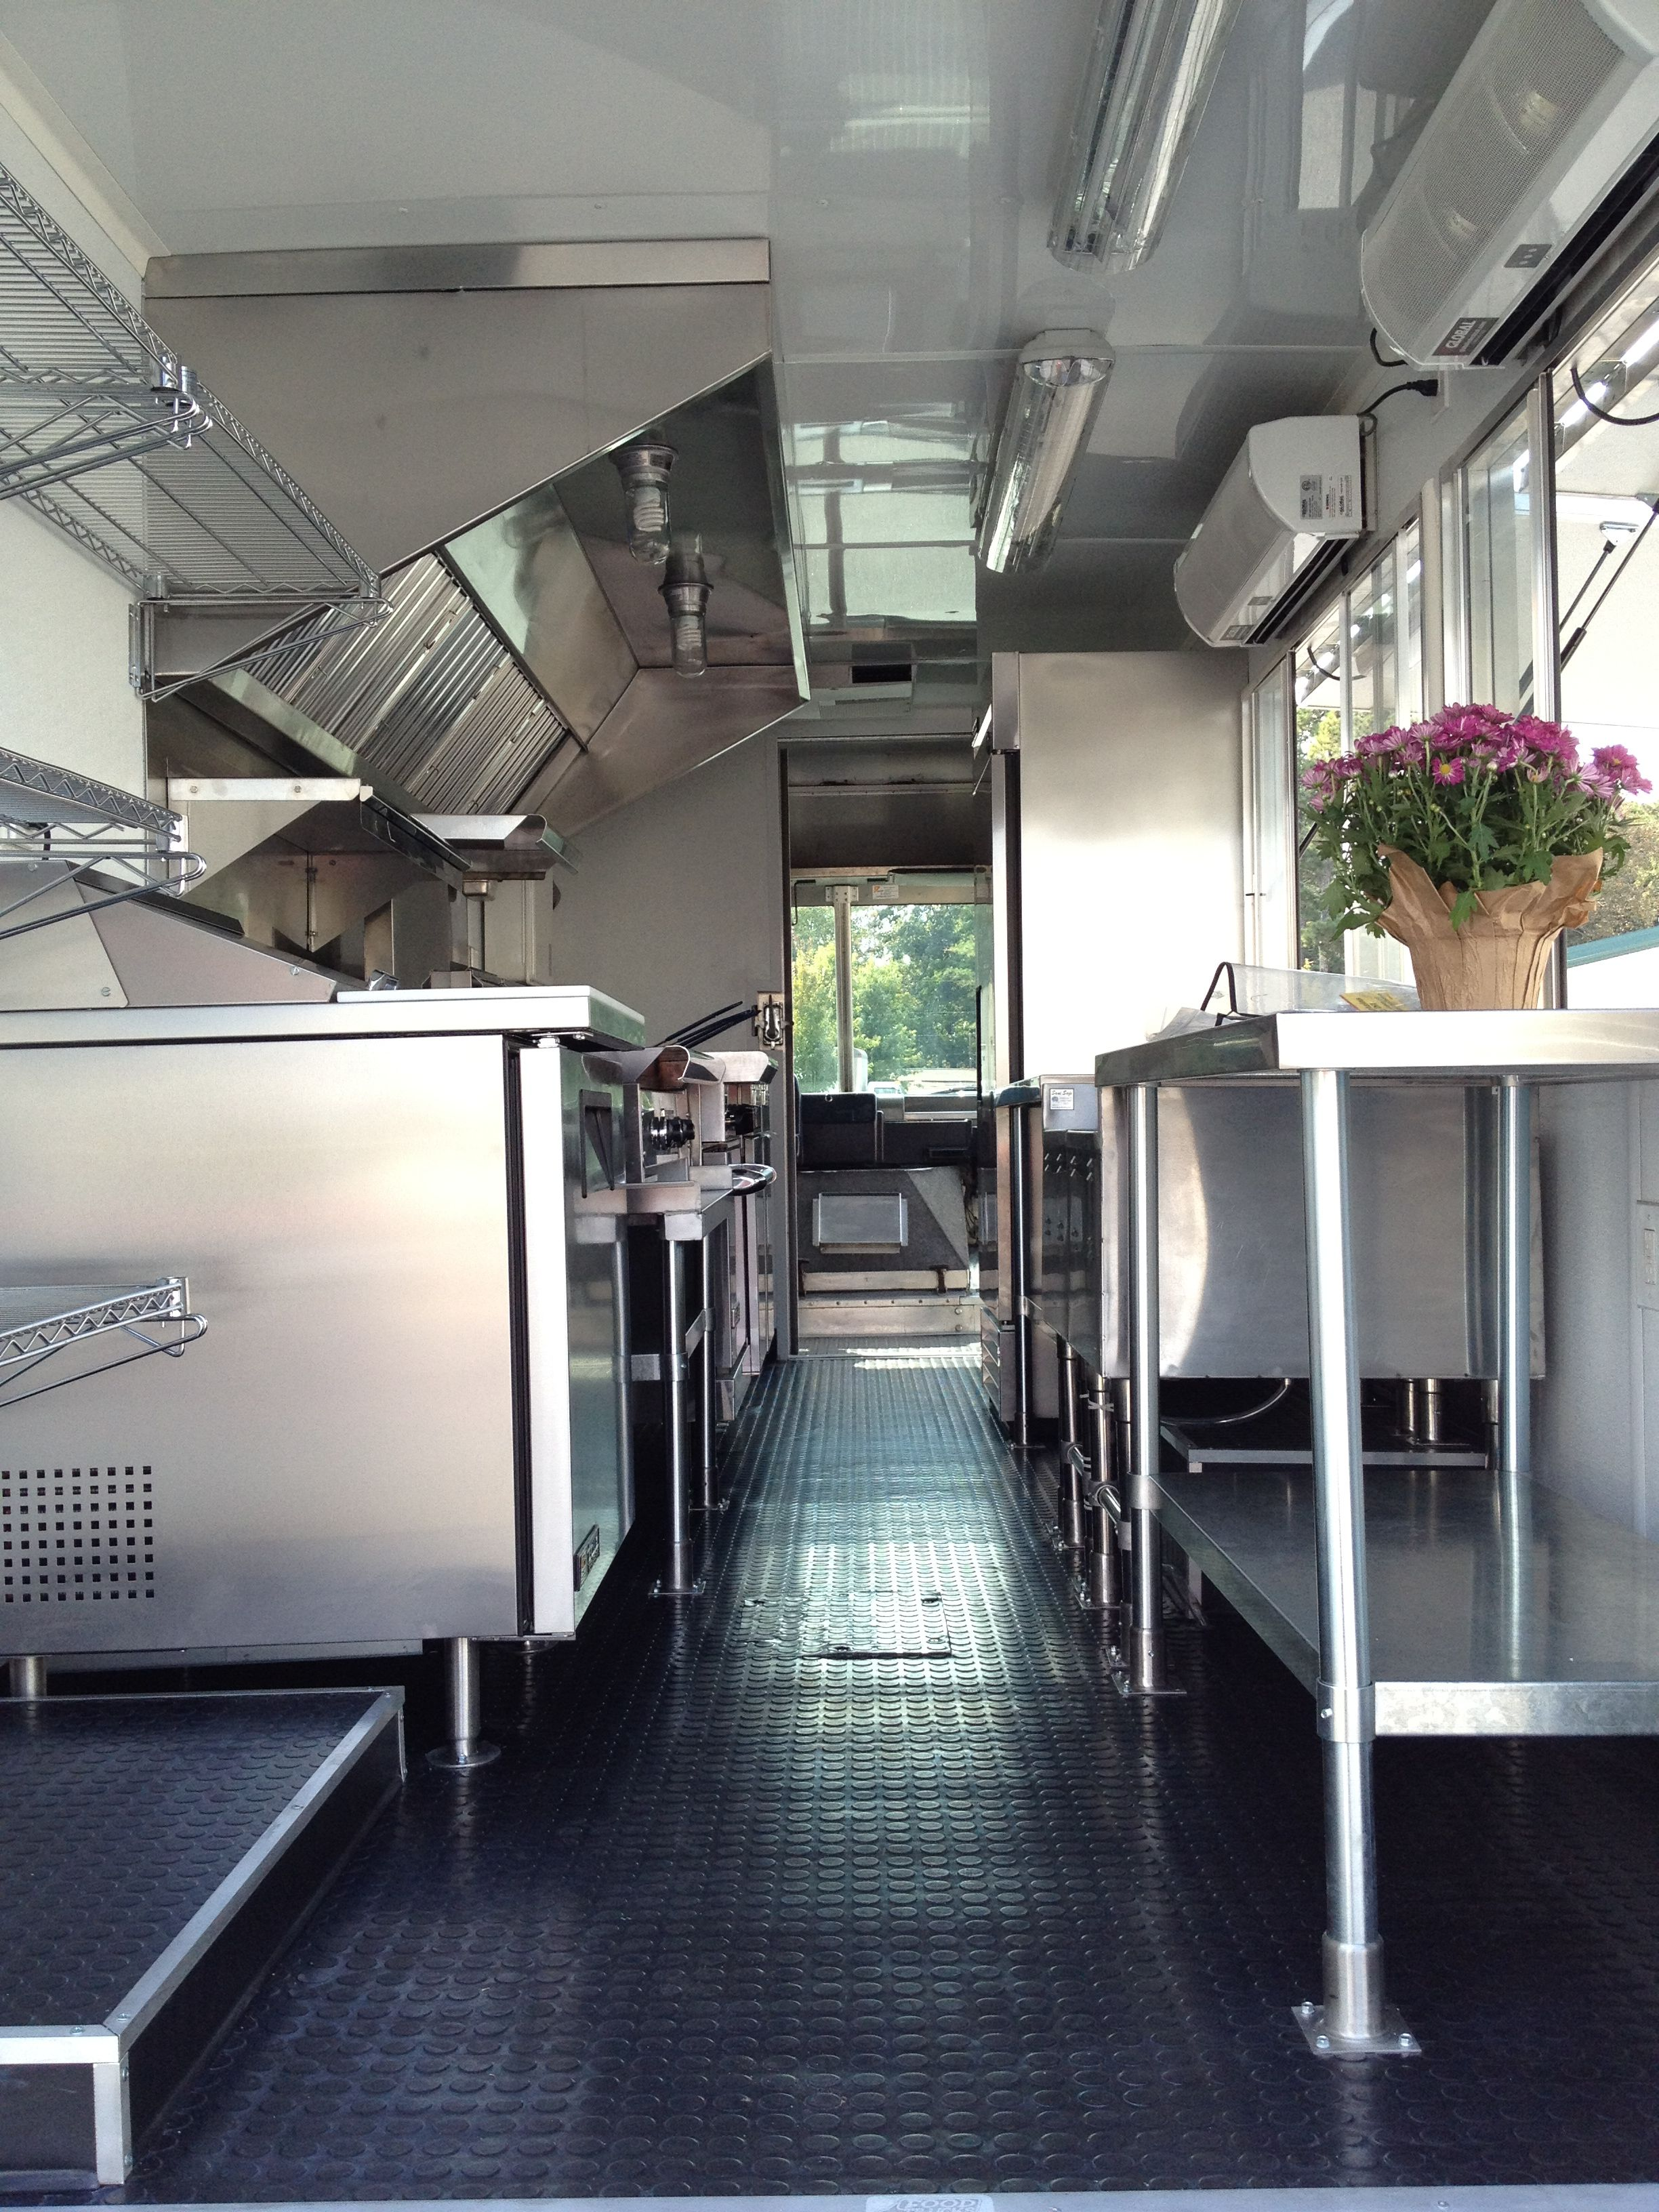 My Brand New Food Truck Truck Built By Food Truck South In